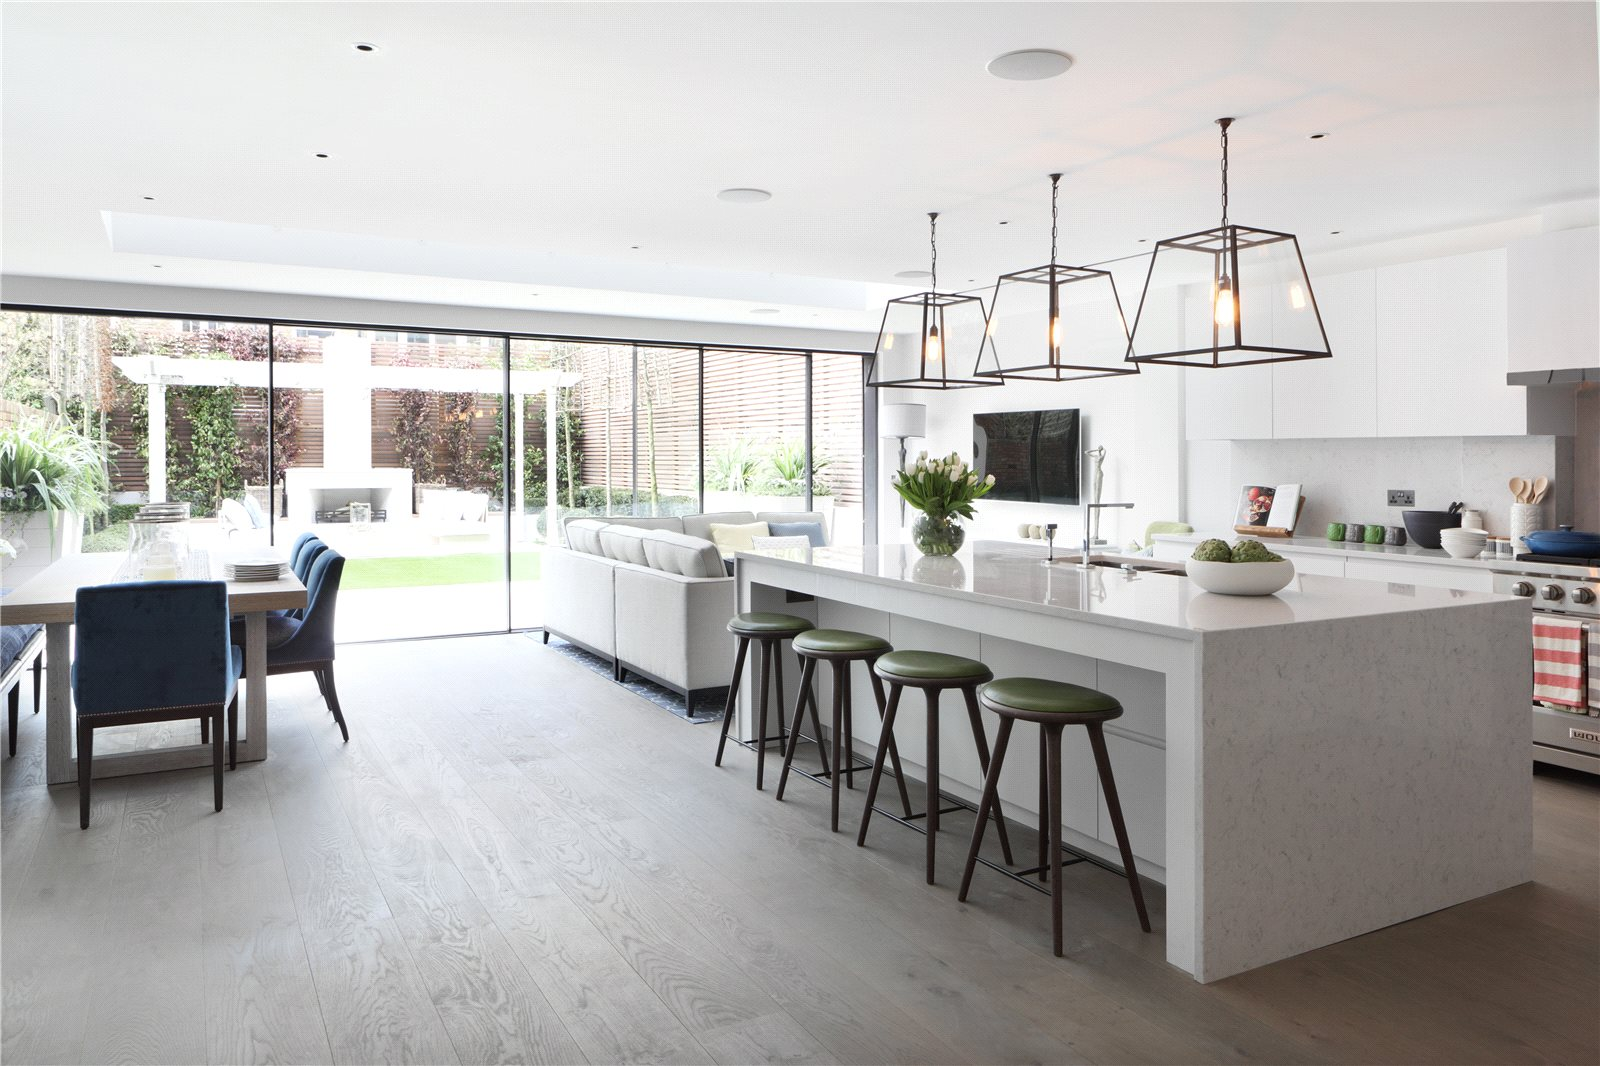 Single Family Home for Sale at Netherton Grove, London, SW10 London, England